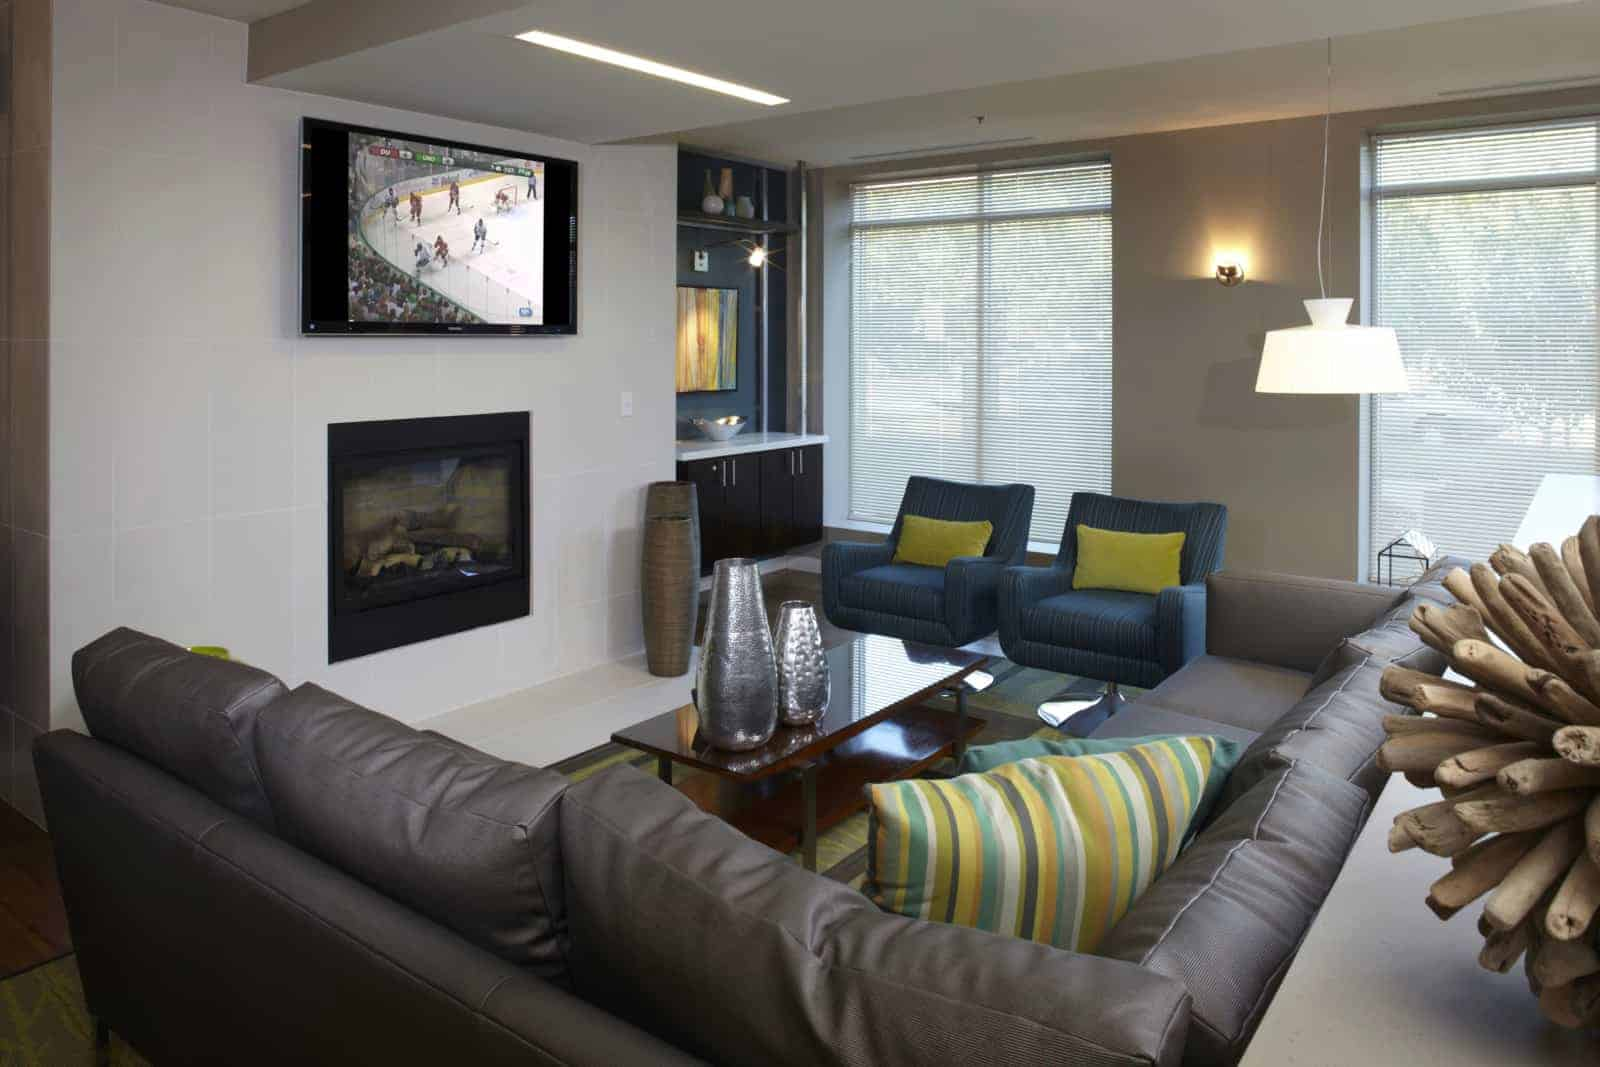 Interior of living room with TV and modern decor.